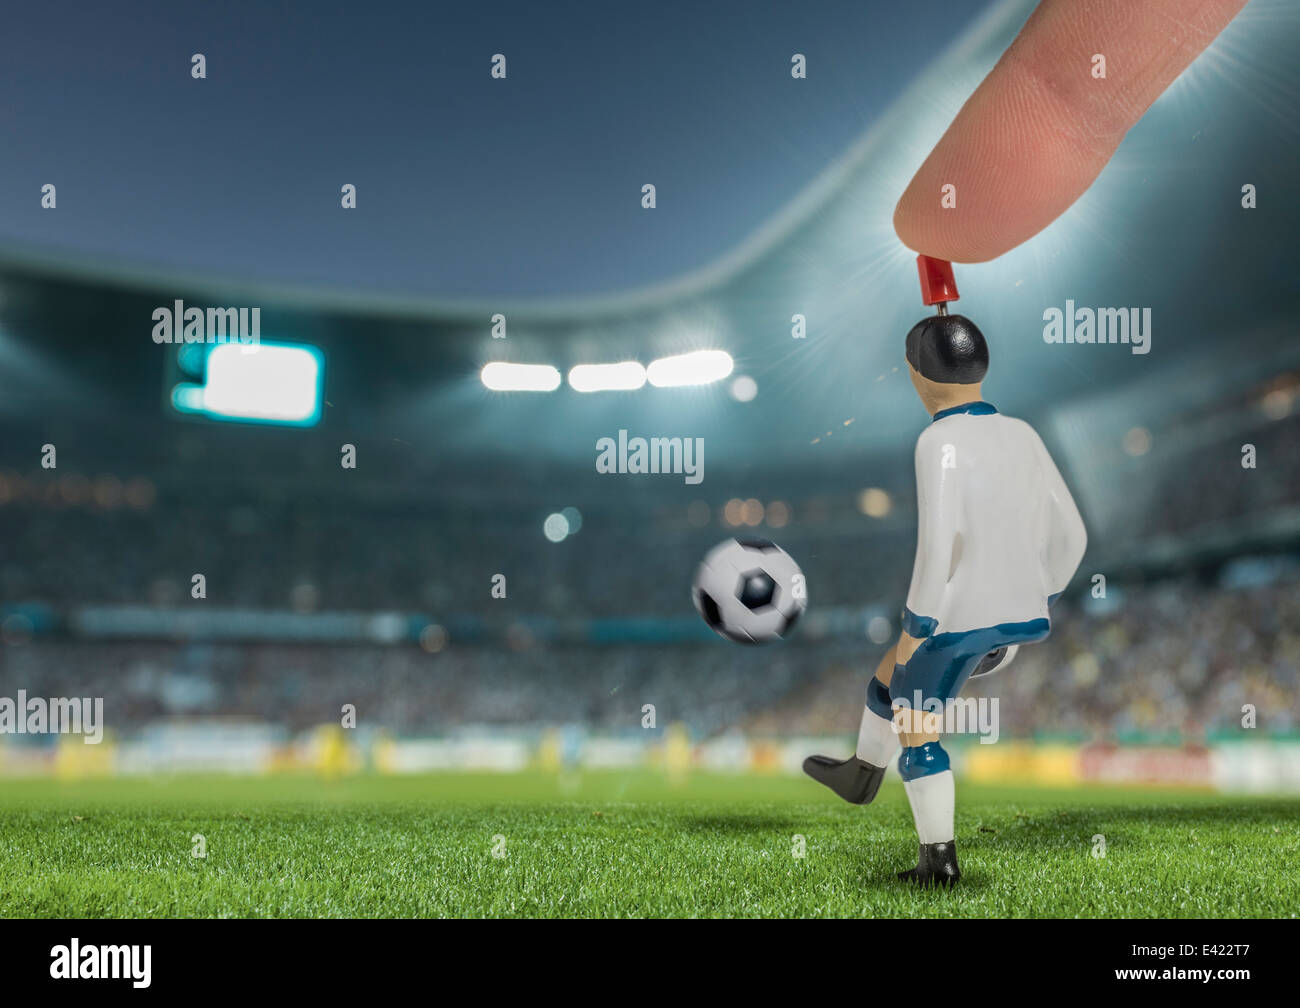 Digitally generated image of soccer player kicking ball in floodlit stadium - Stock Image